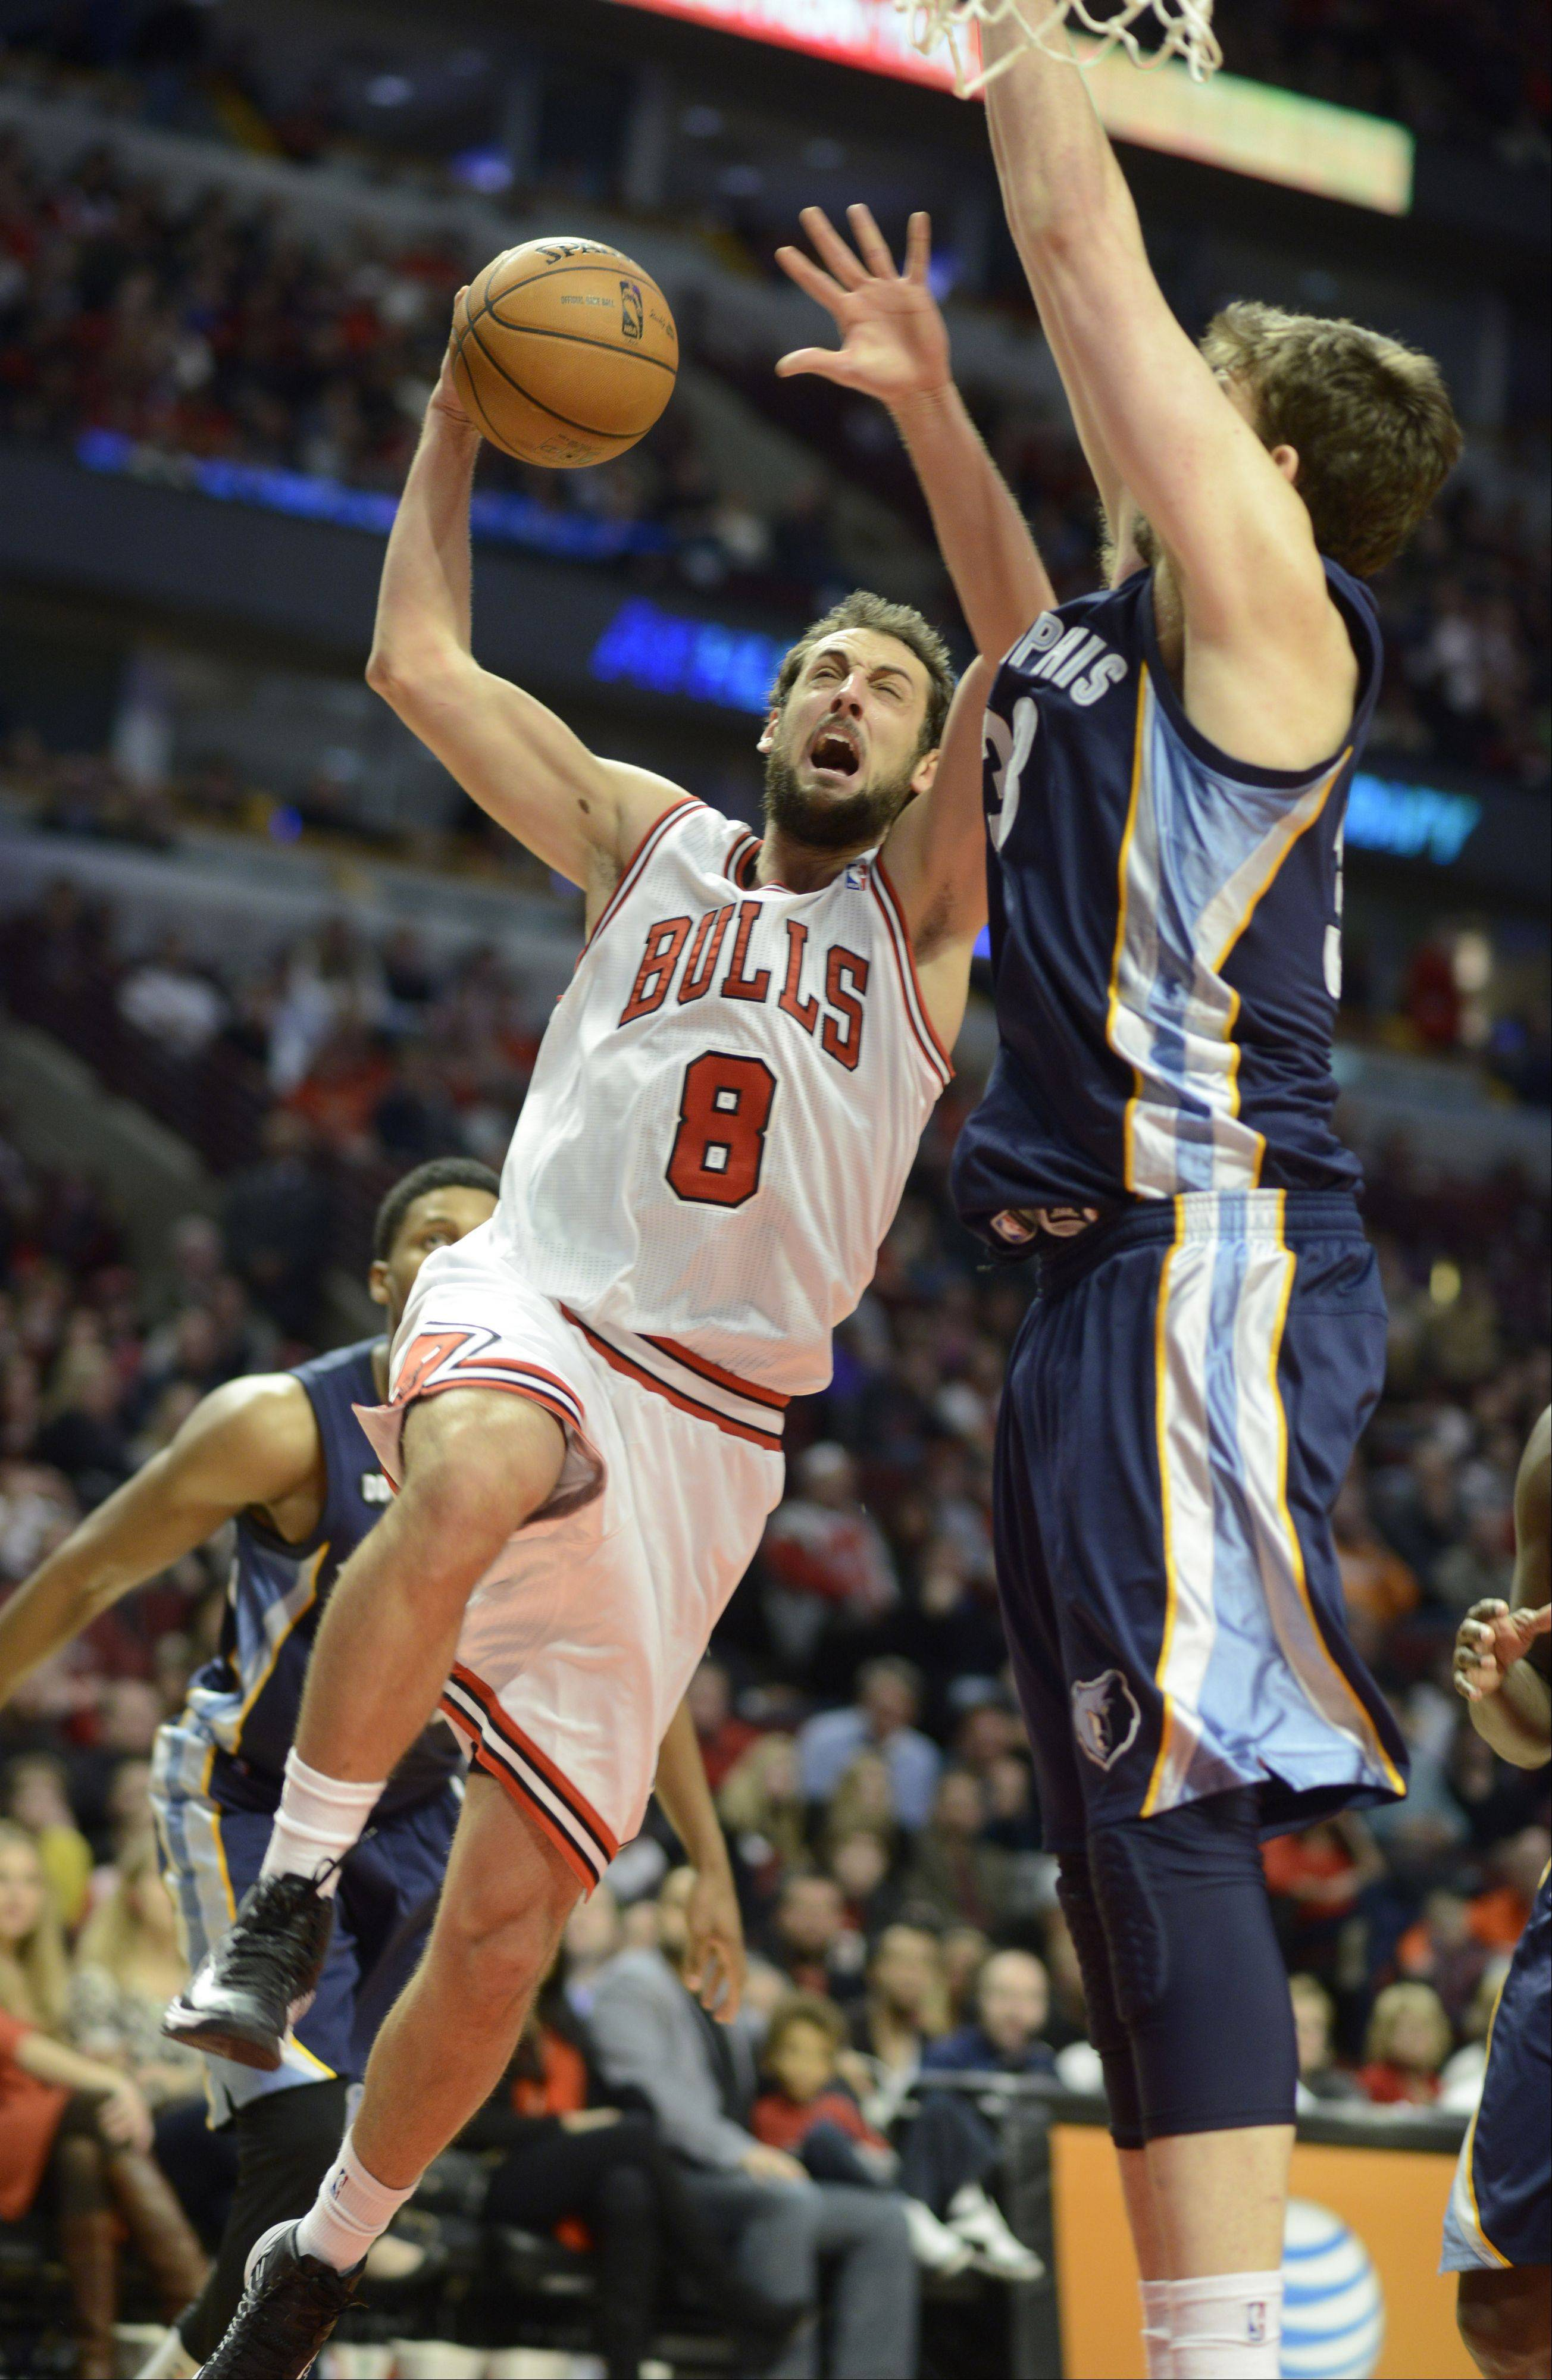 Marco Belinelli of the of the Bulls drives hard to the basket against Marc Gasol of the Grizzlies during Saturday�s game.